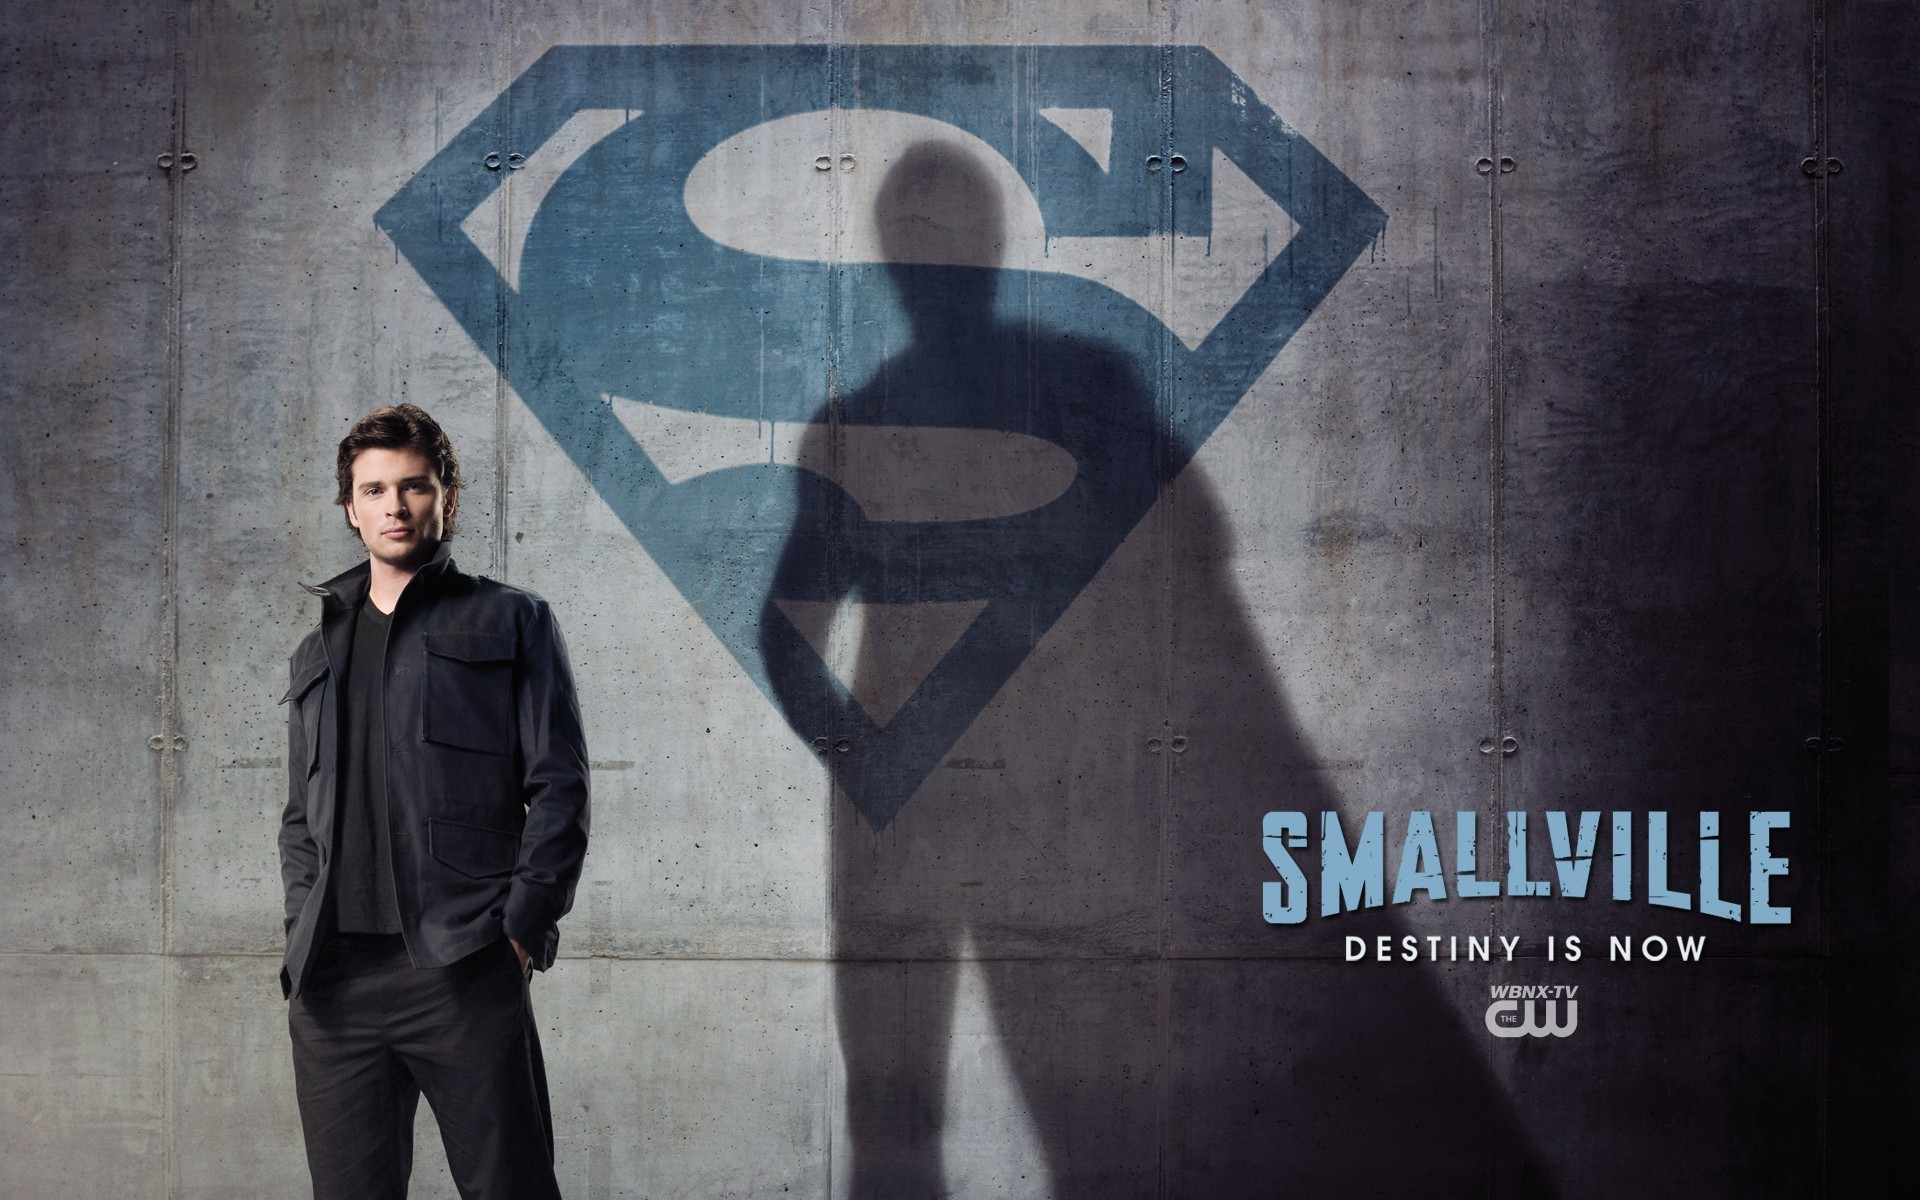 dc comics superman Smallville HD Wallpaper